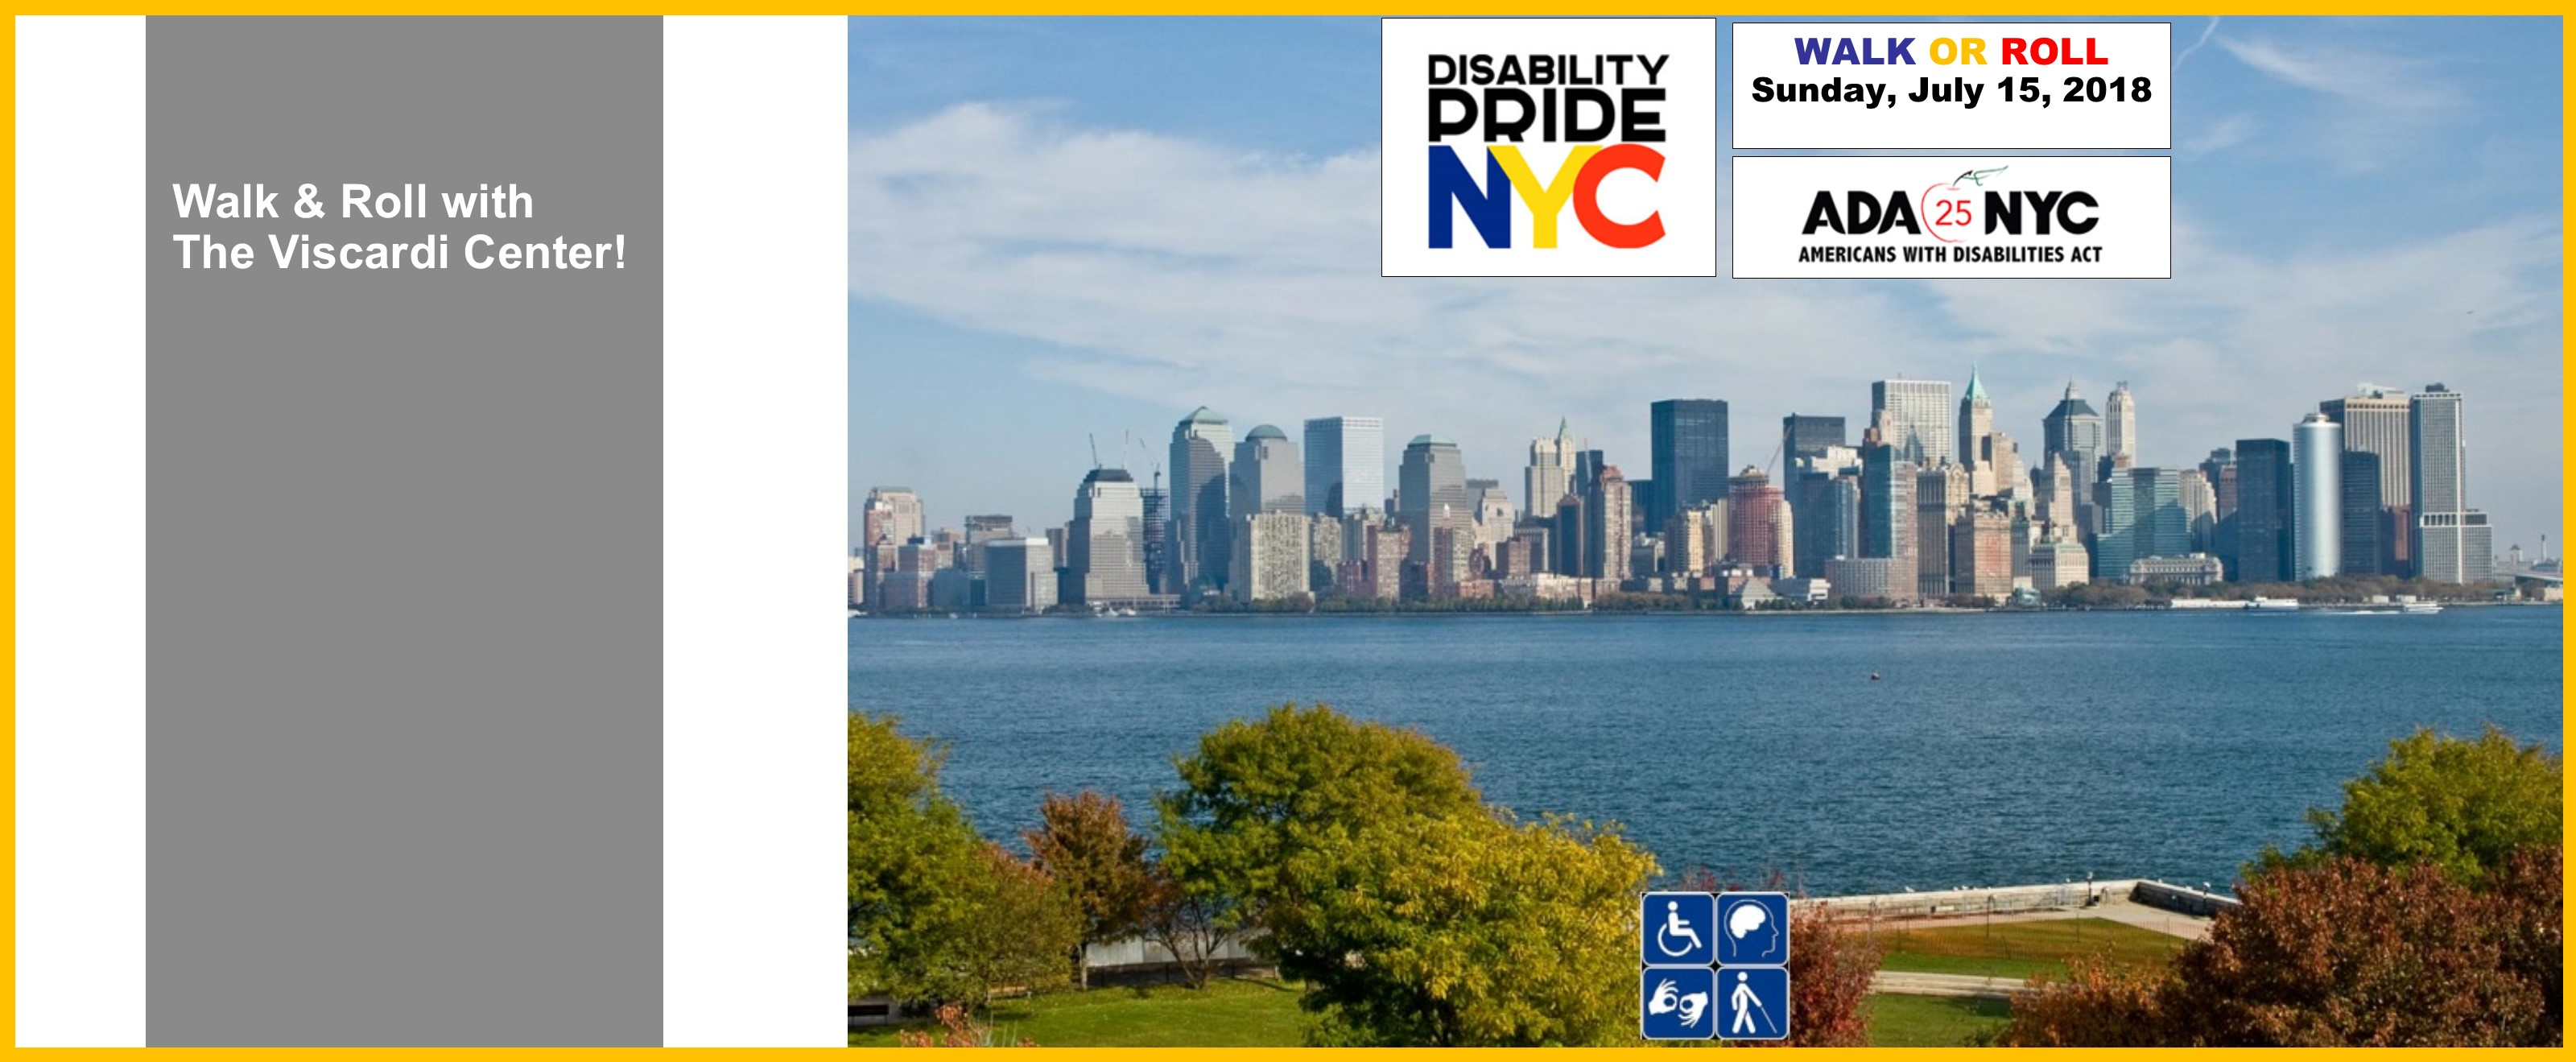 Walk & Roll with The Viscardi Center at this year's Disability Pride Parade on Sunday, July 15.